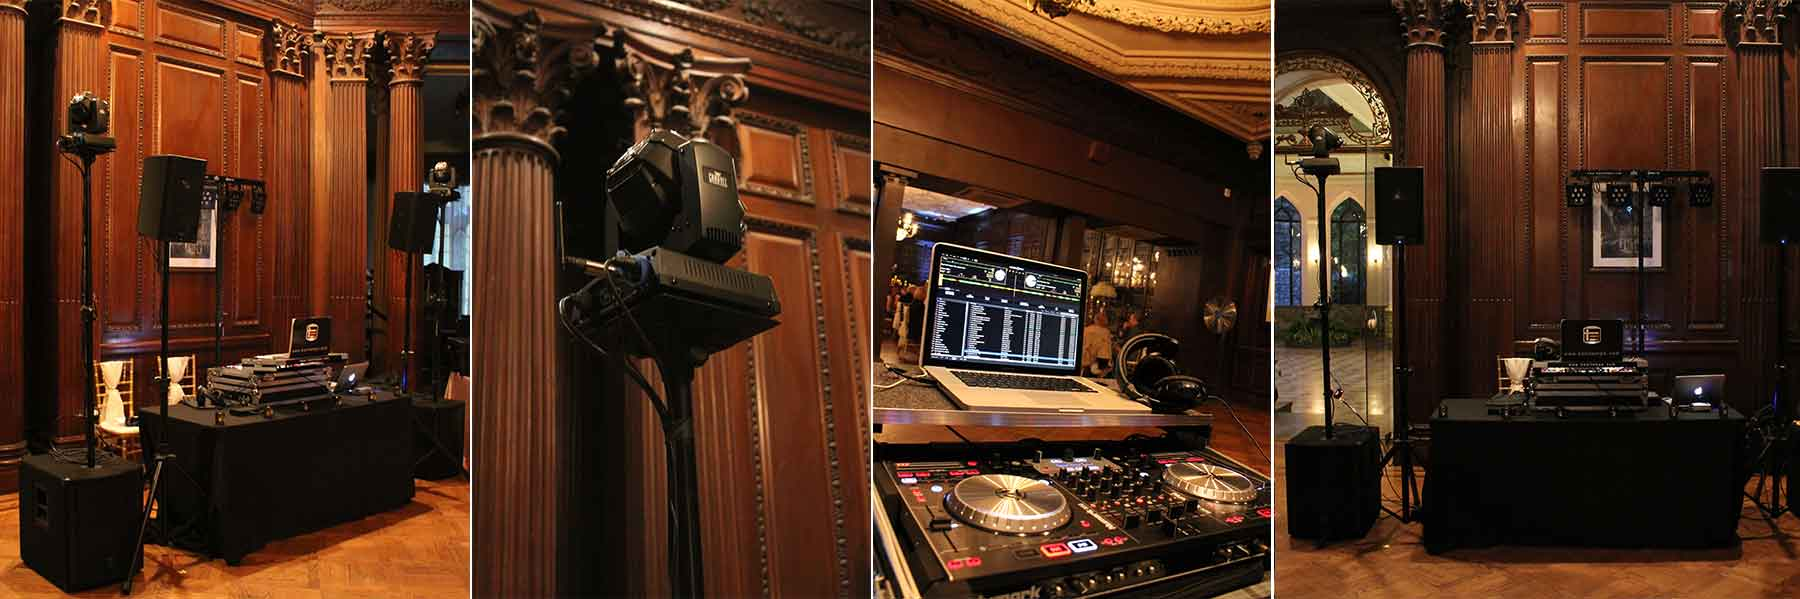 Toronto-DJ-Set-up-Casa-Loma